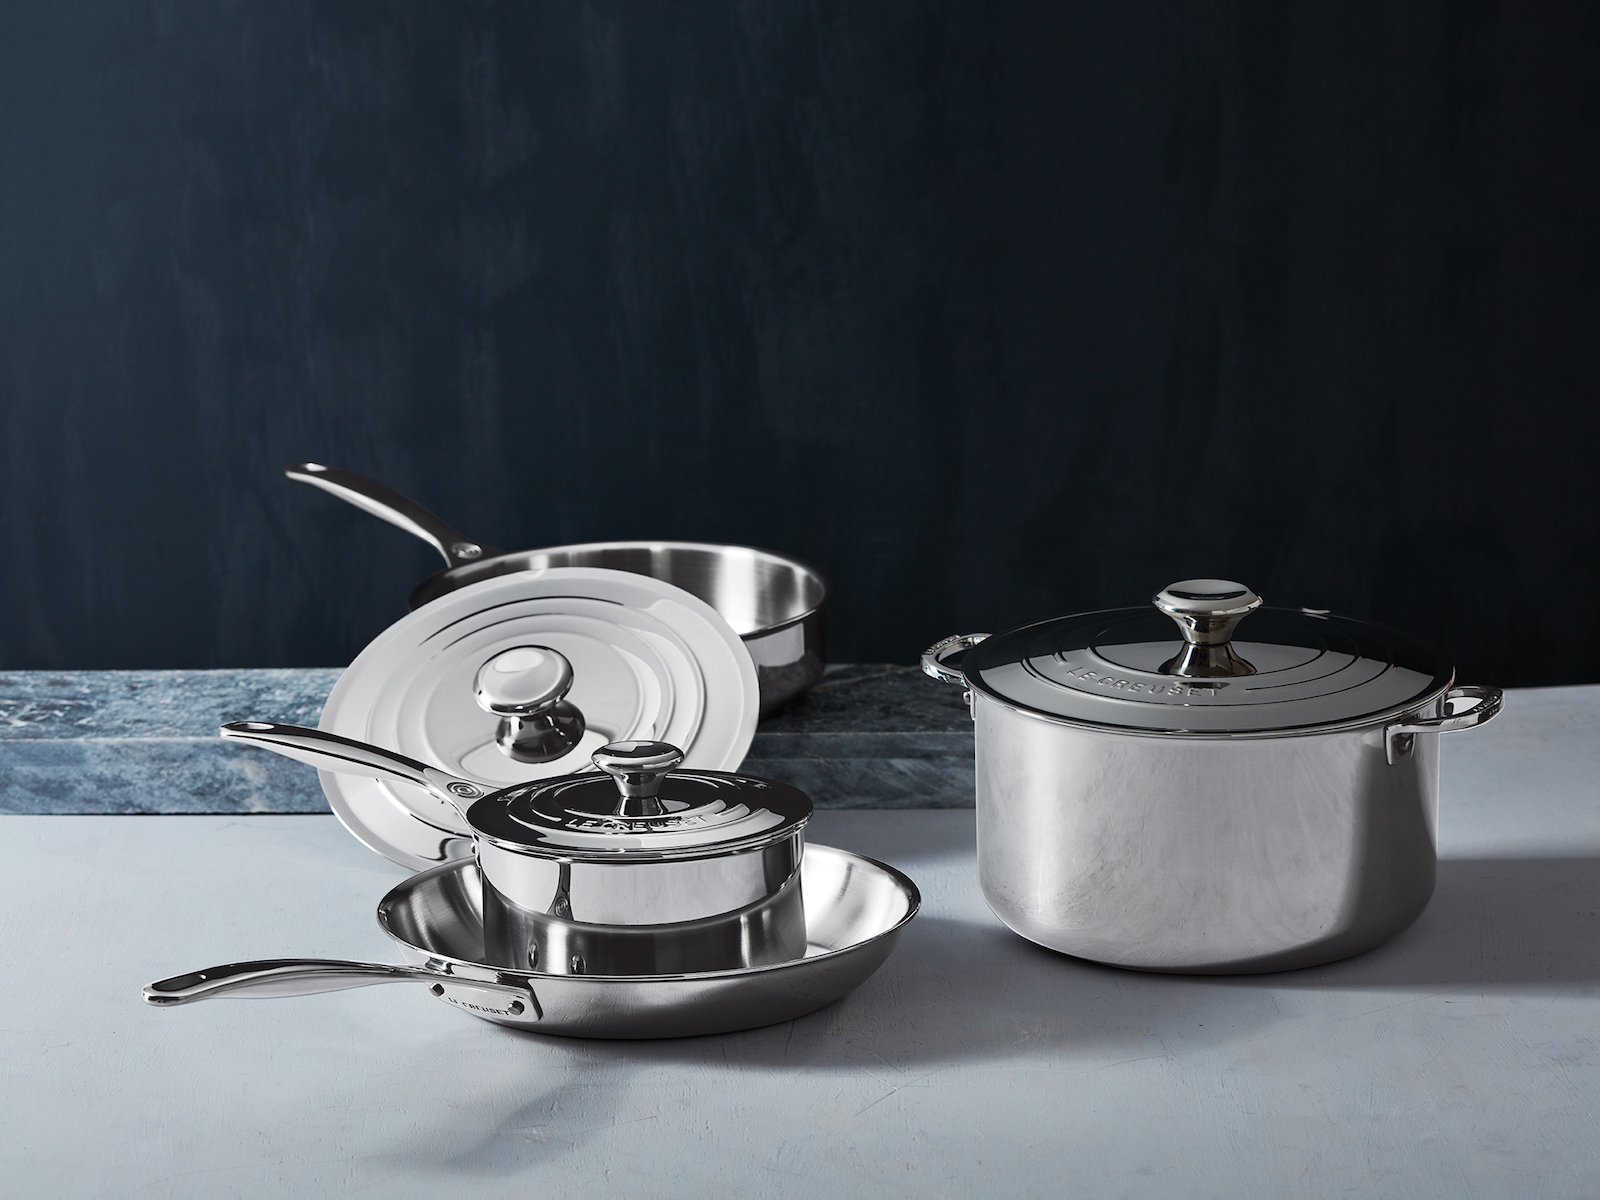 Le Creuset Launches Stainless Steel Cookware Set